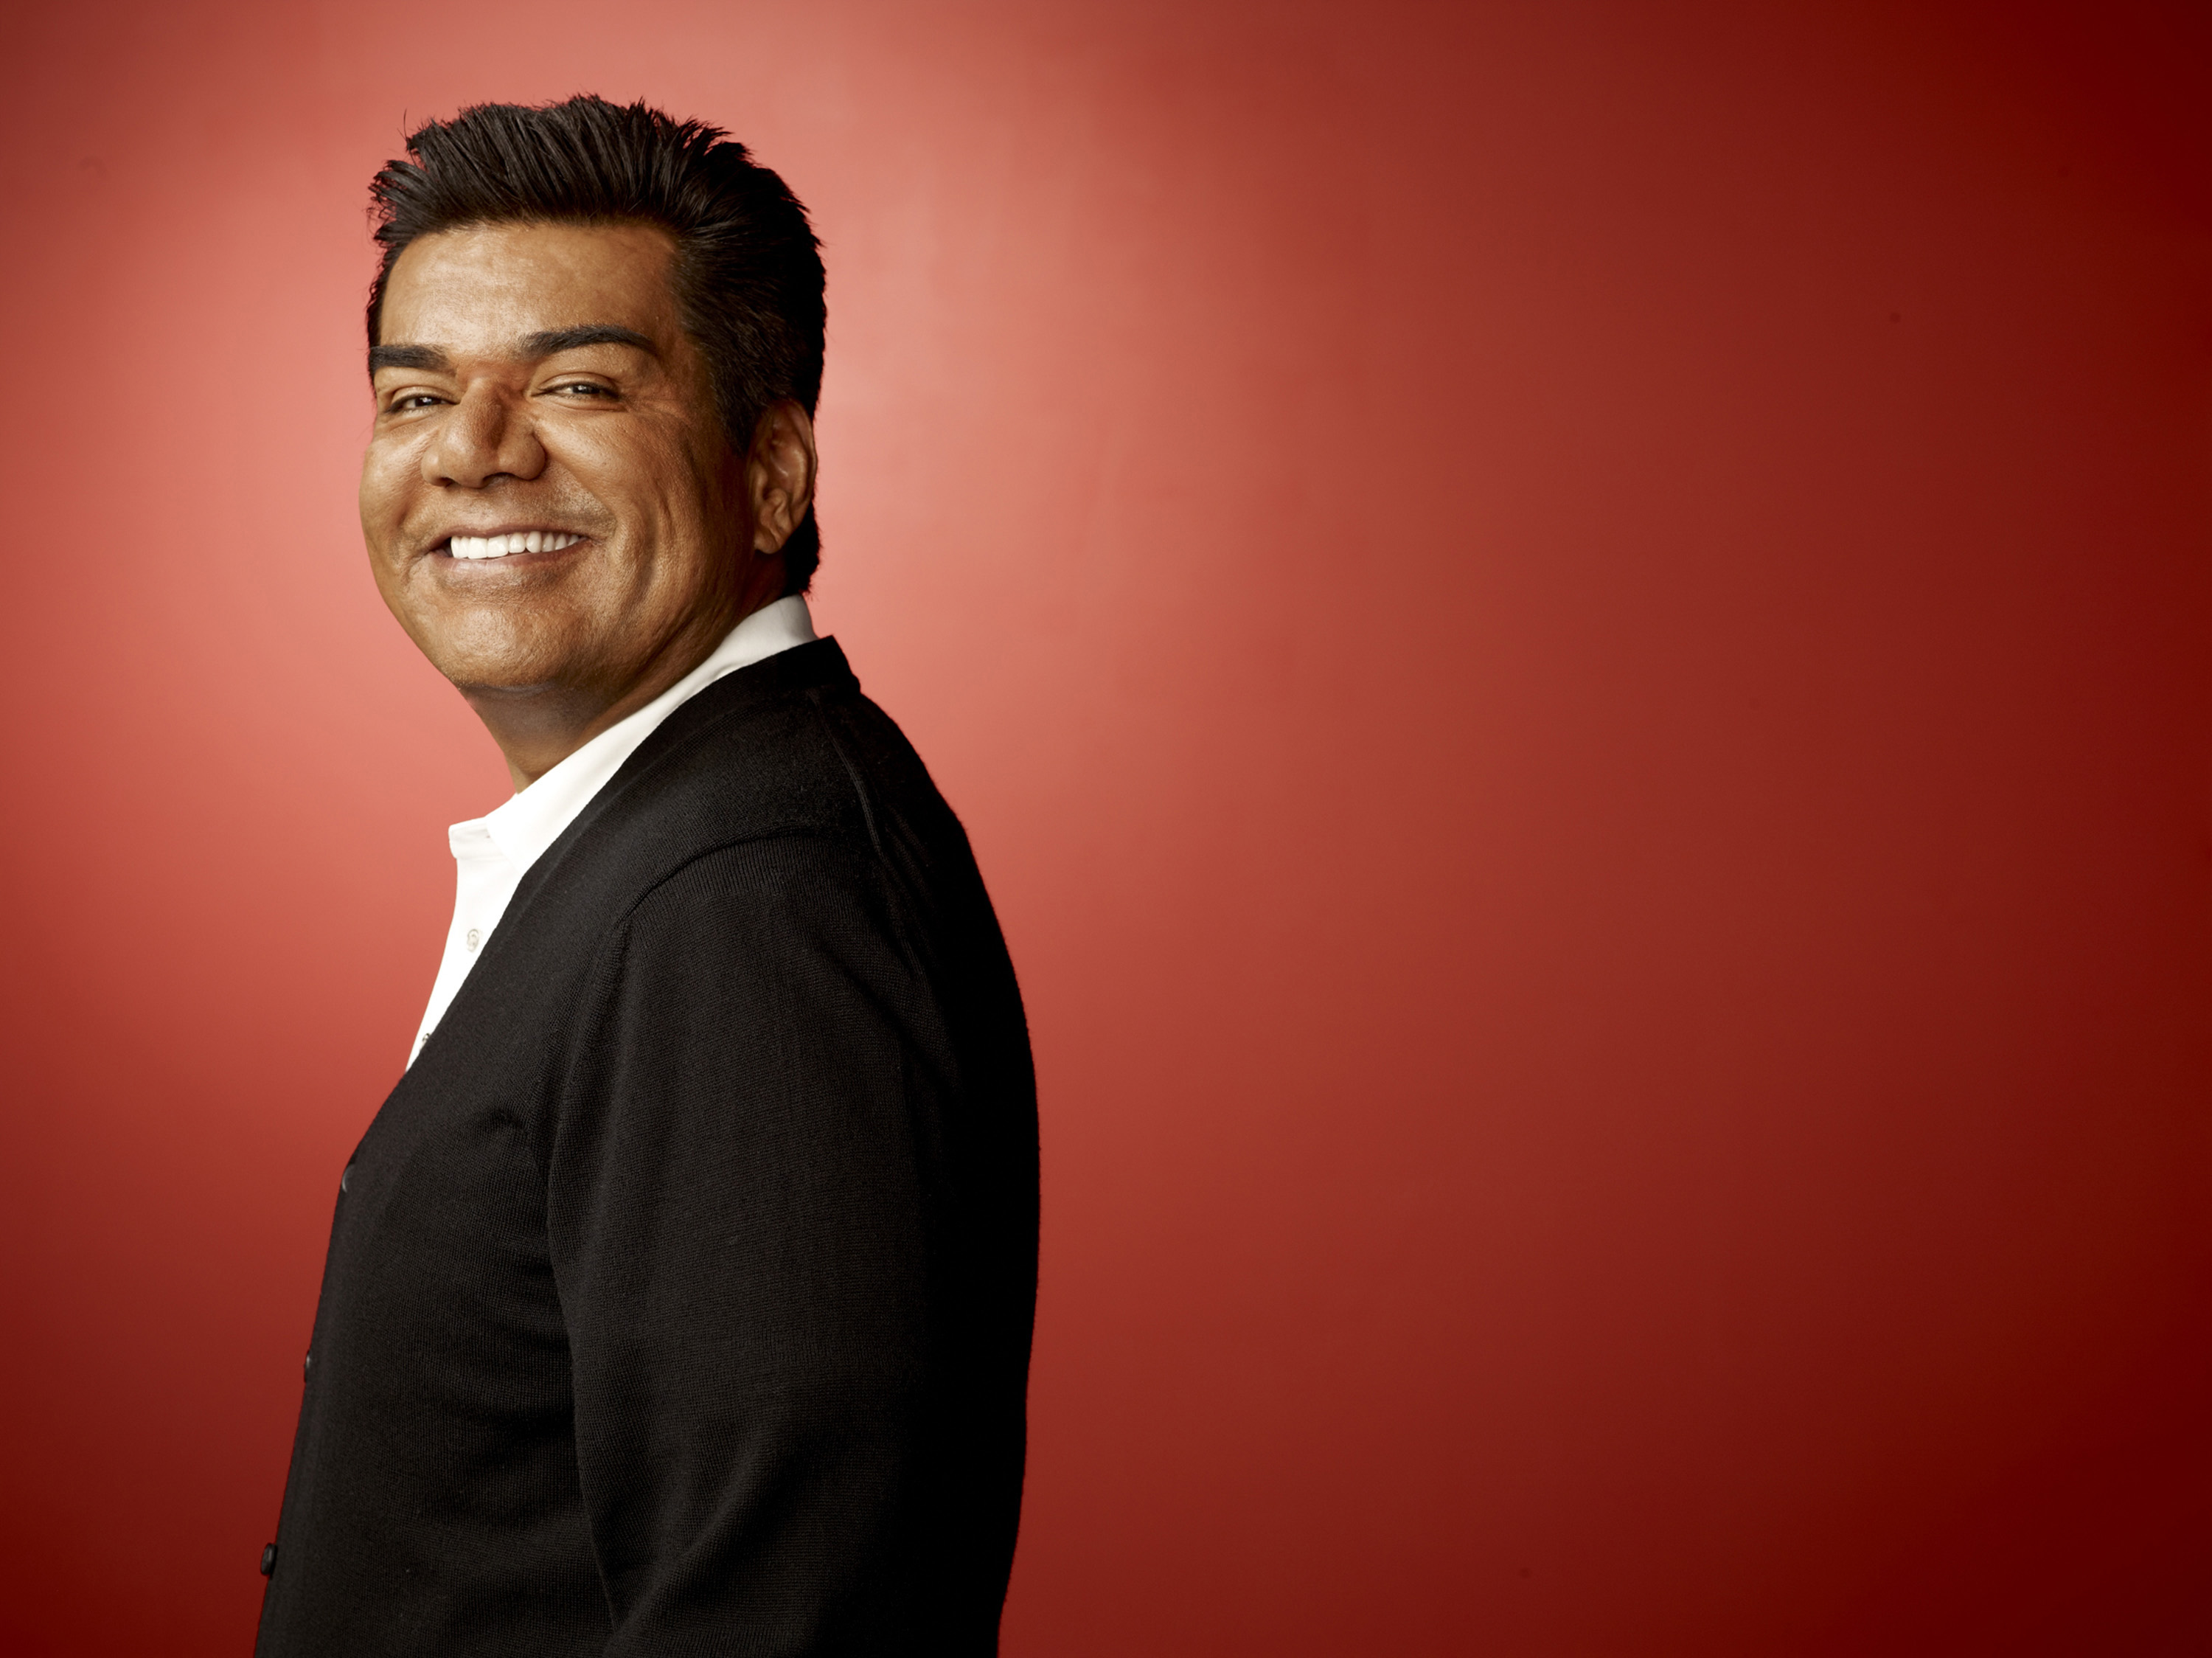 George Lopez Is Heading Back to TV with a New 'Curb Your Enthusiasm'-Style Series